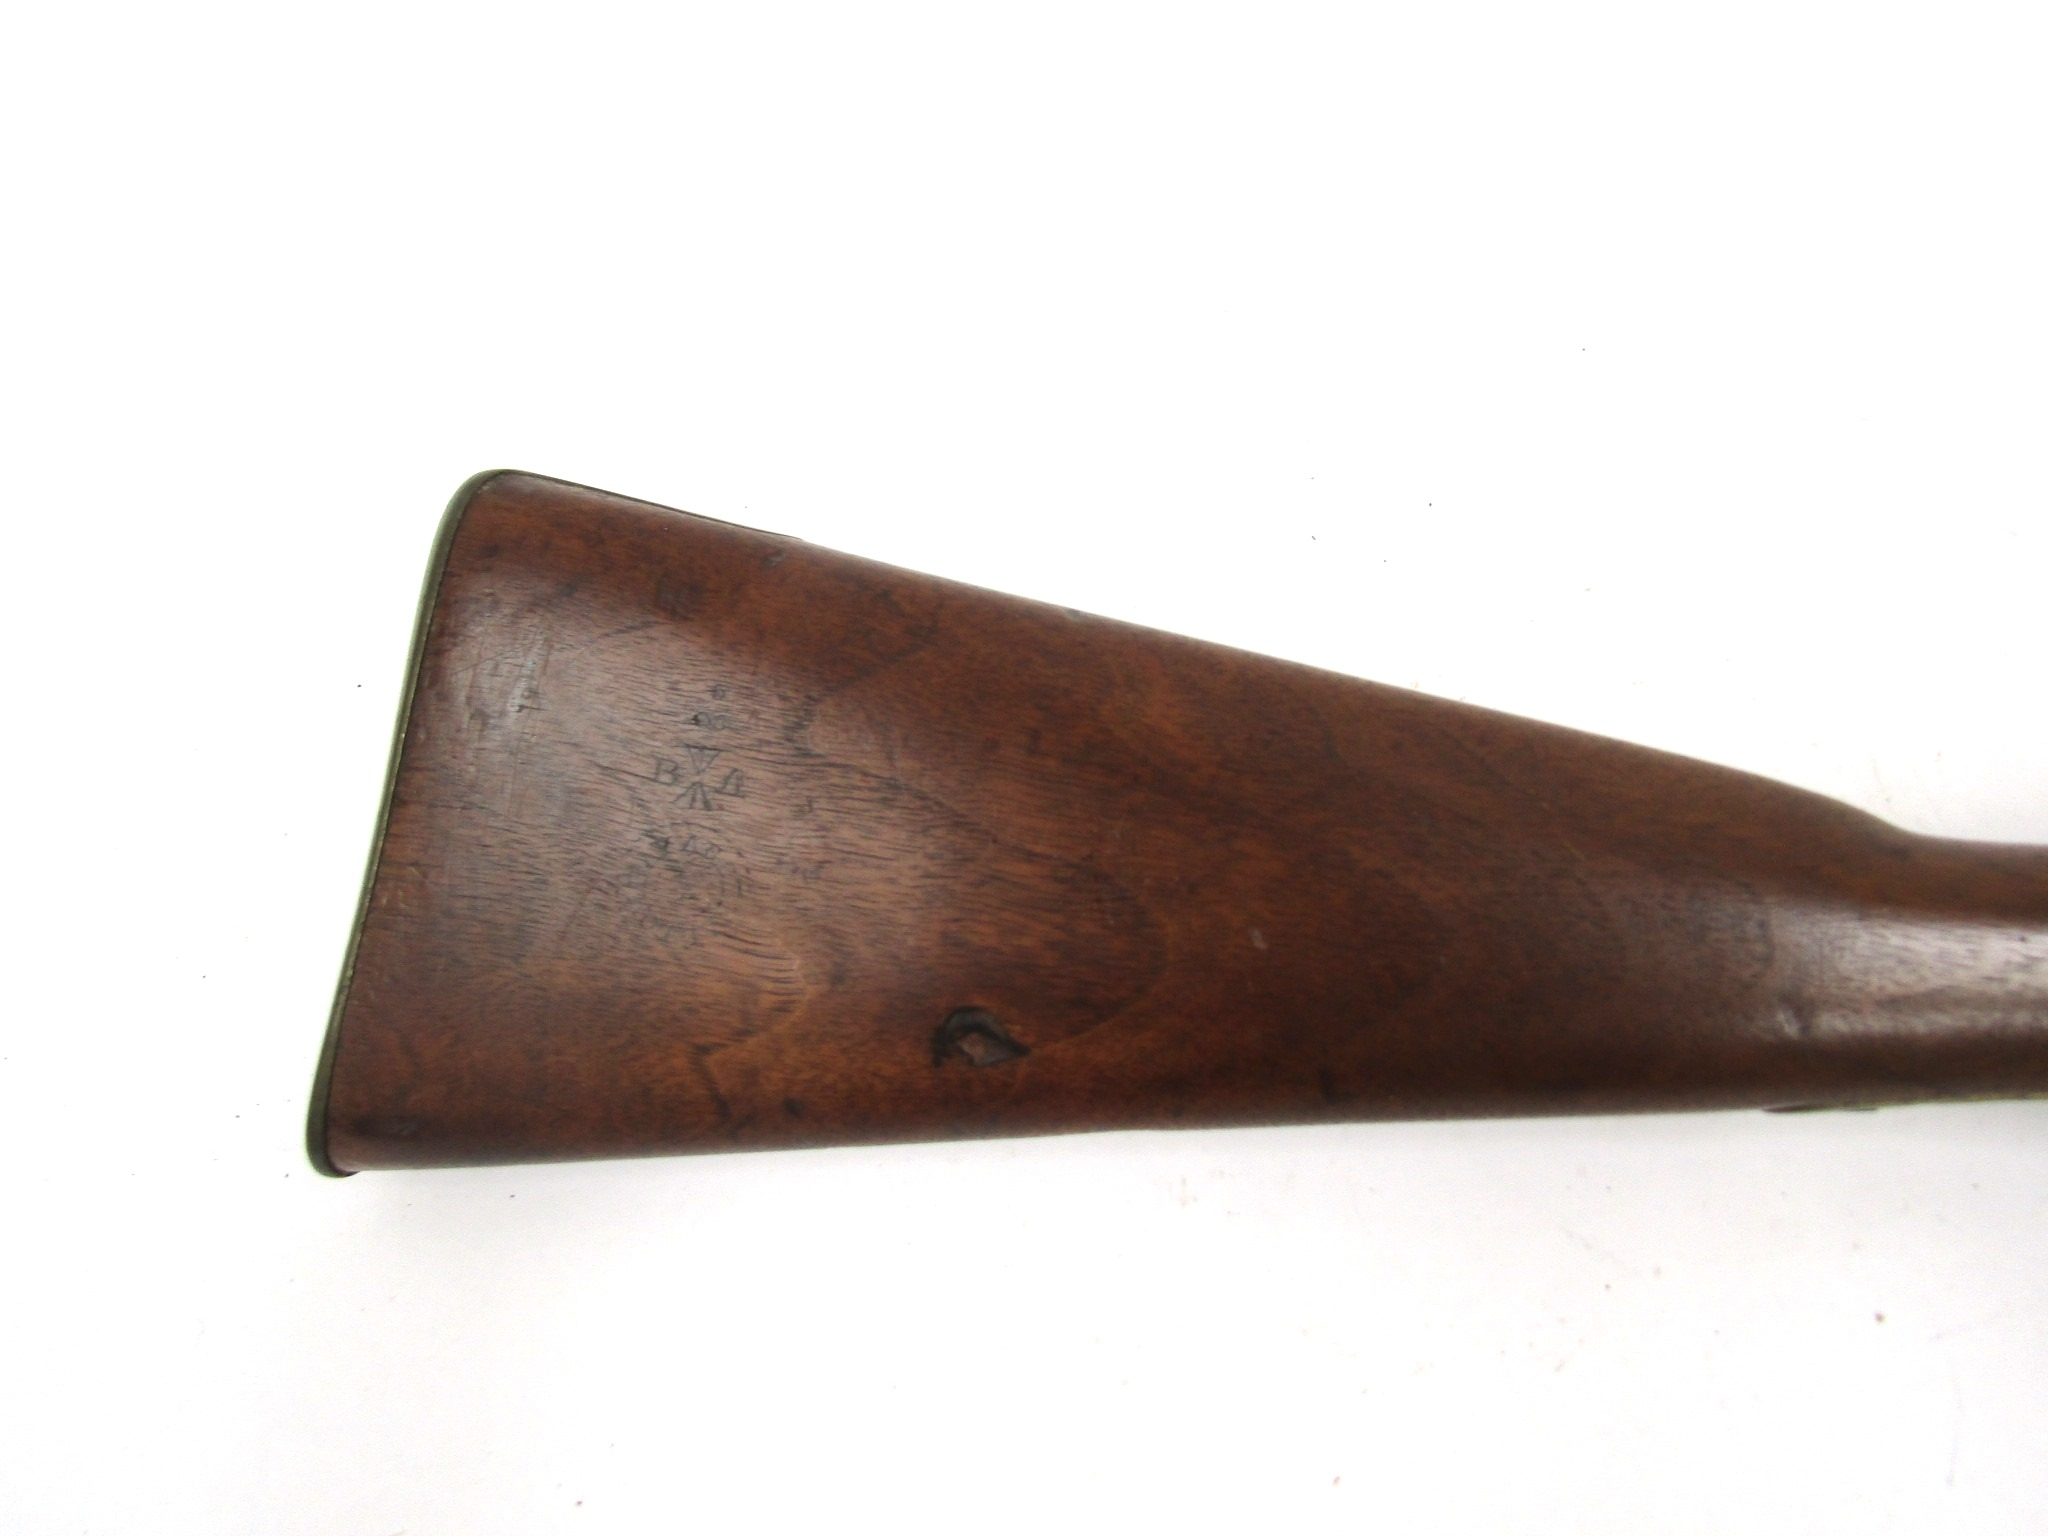 A Victorian East India percussion cavalry carbine, - Image 2 of 5